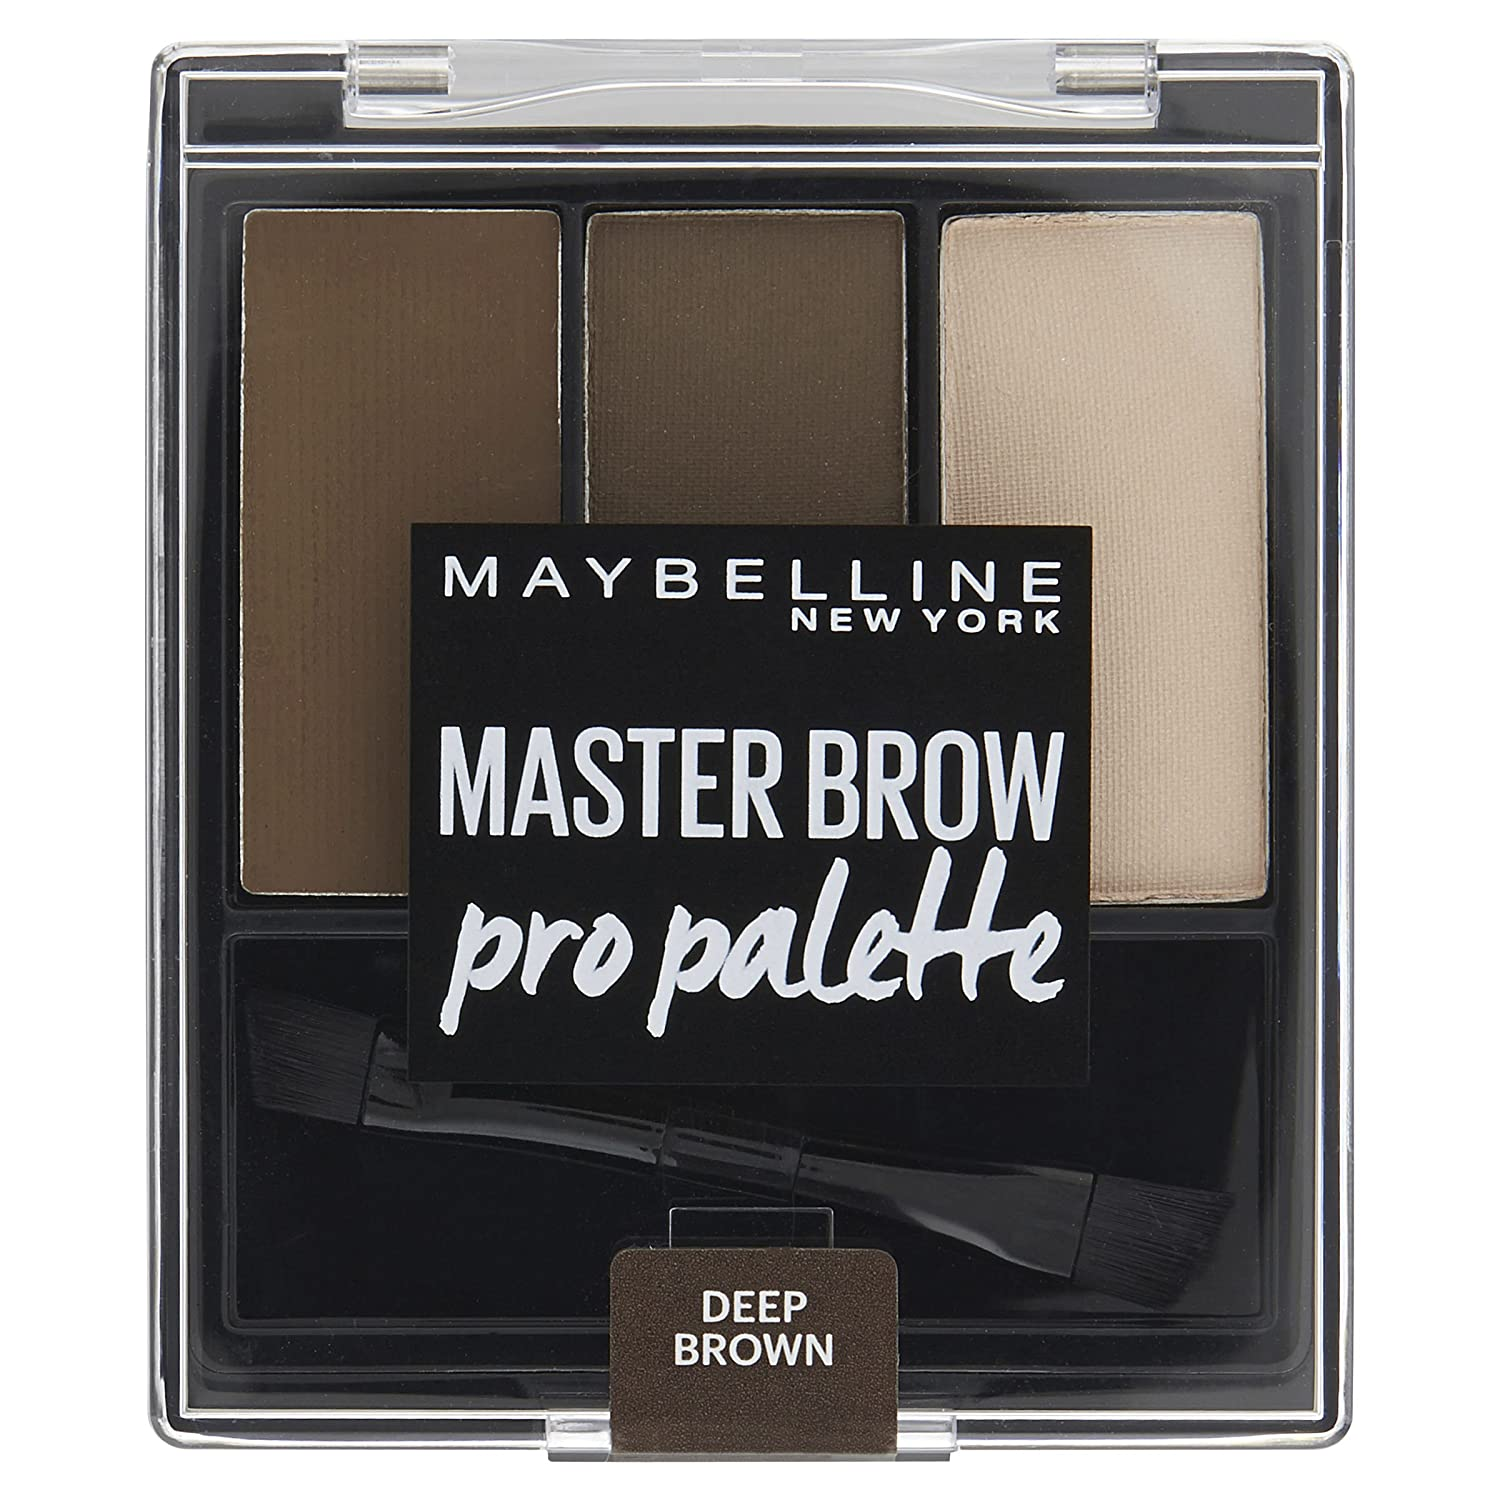 Maybelline Master Brow Pro Palette Kit Deep Brown 3.4g L' Oreal 3600531288778